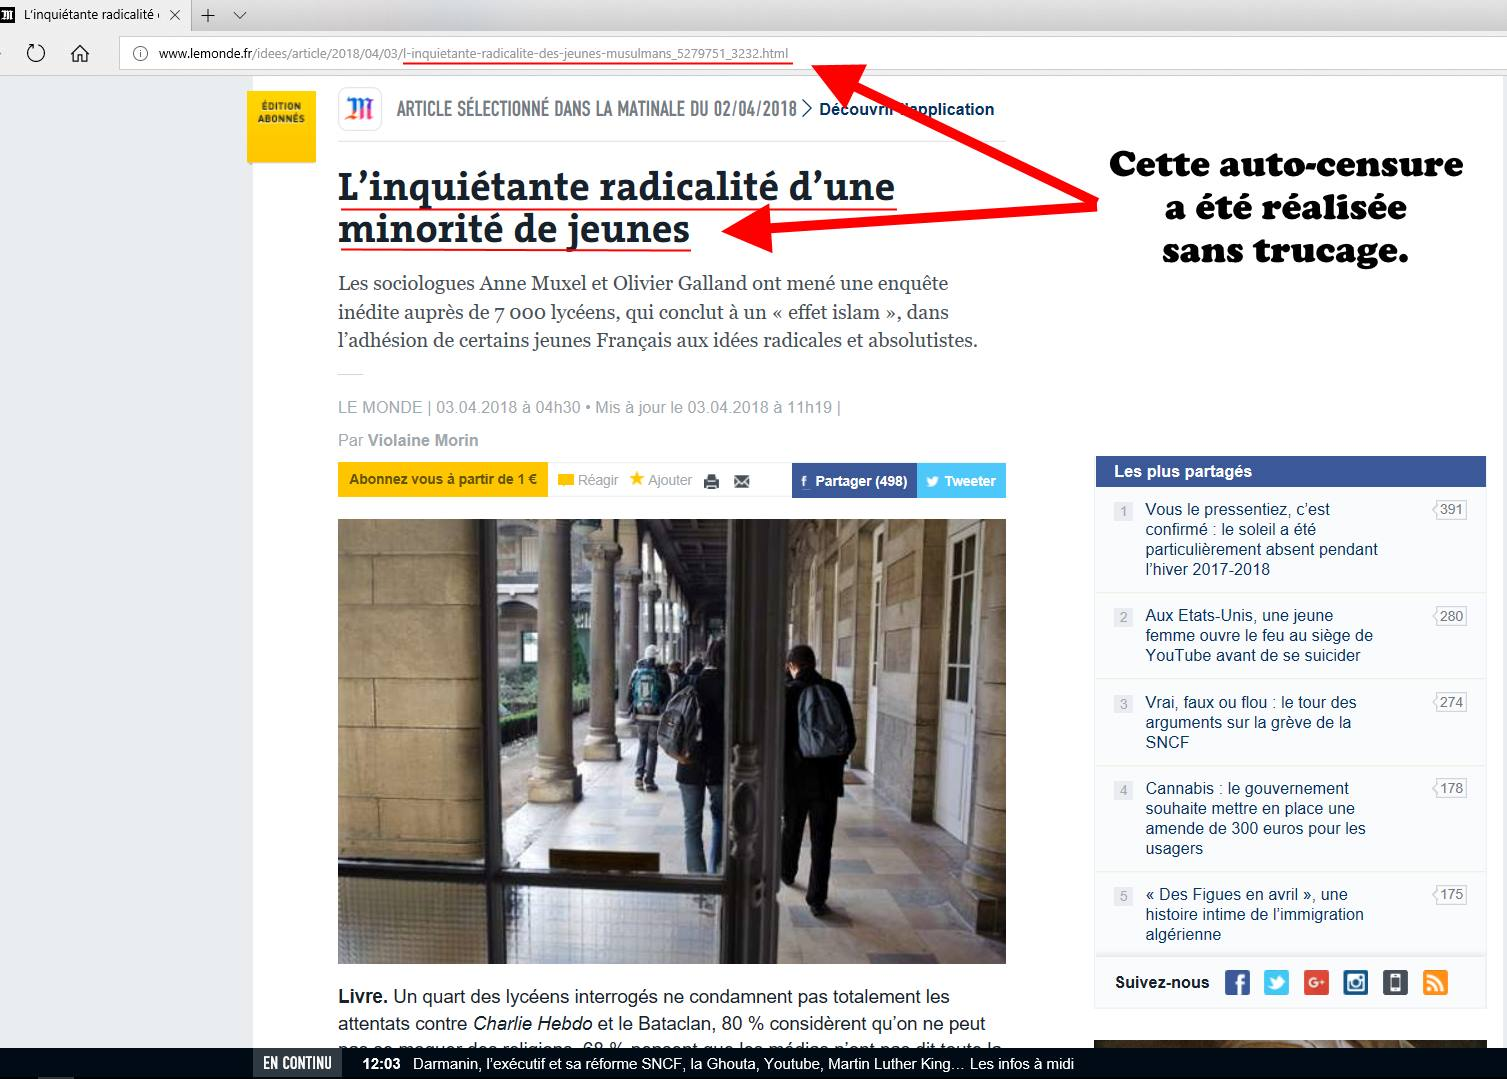 Le journal le monde et l'autocensure